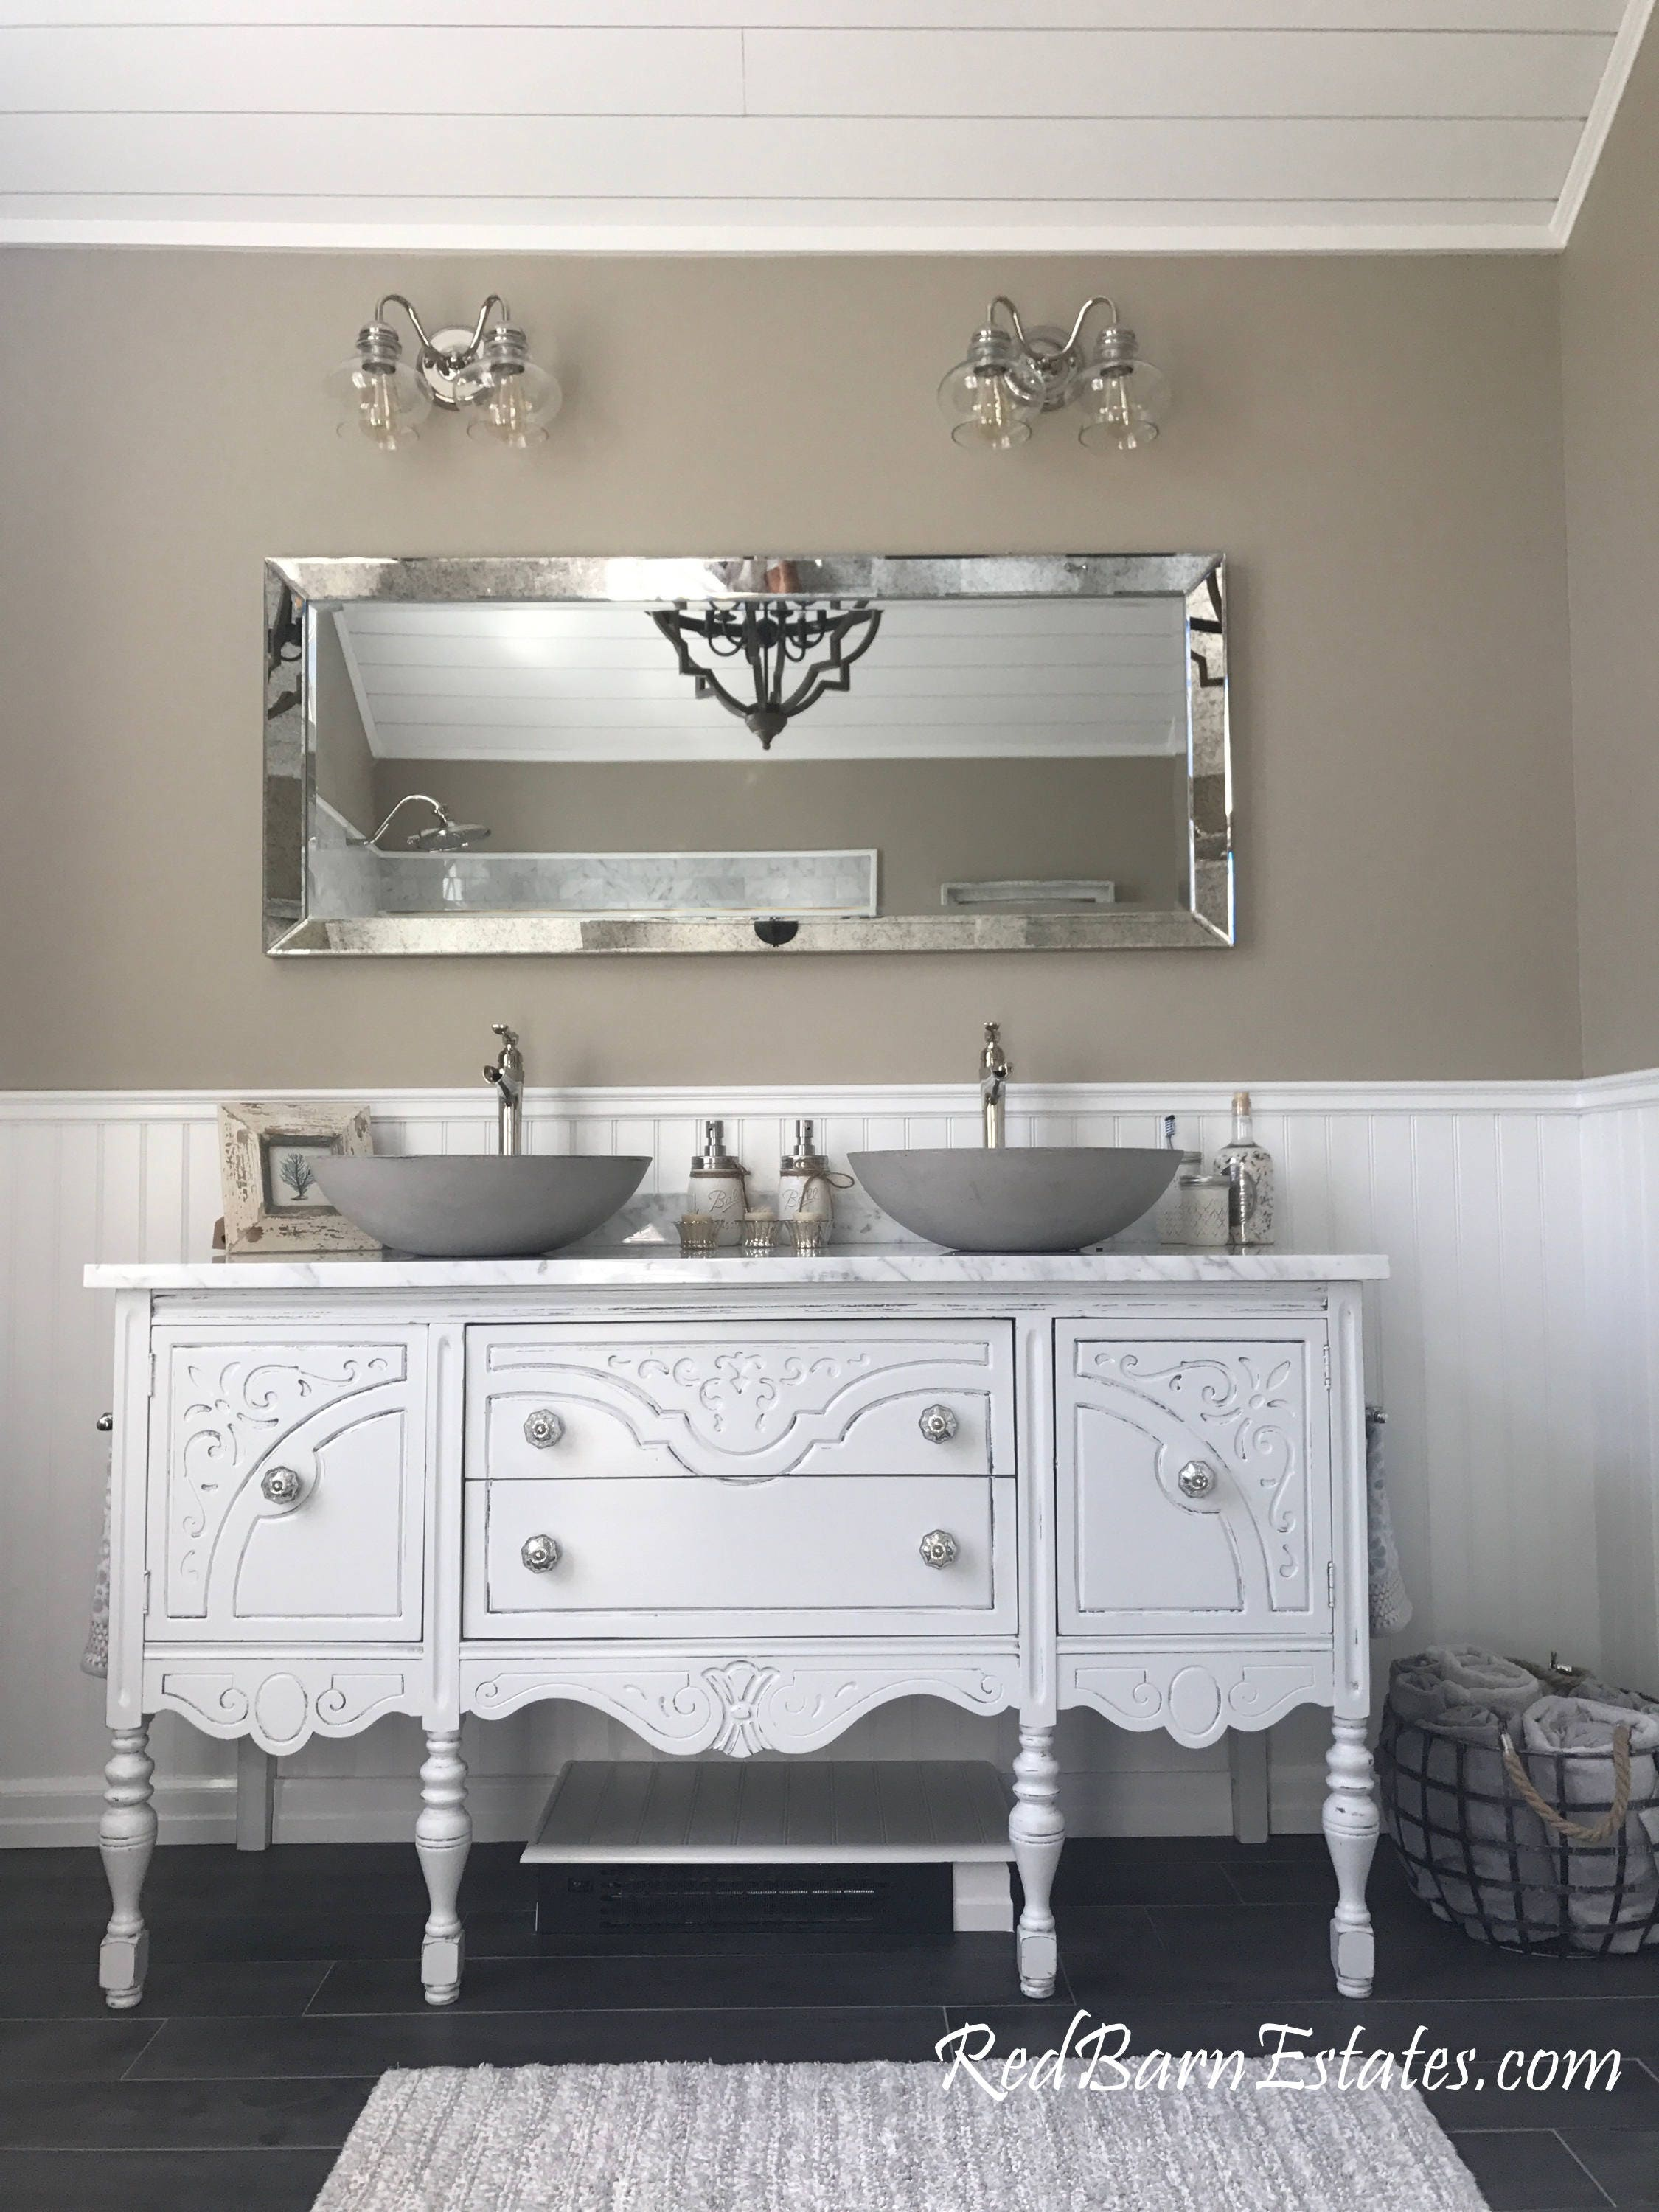 Antique Bathroom Vanity Double Or Single We Custom Convert From Antique Furniture For You Victorian Farmhouse Reno 61 To 66 Wide Long